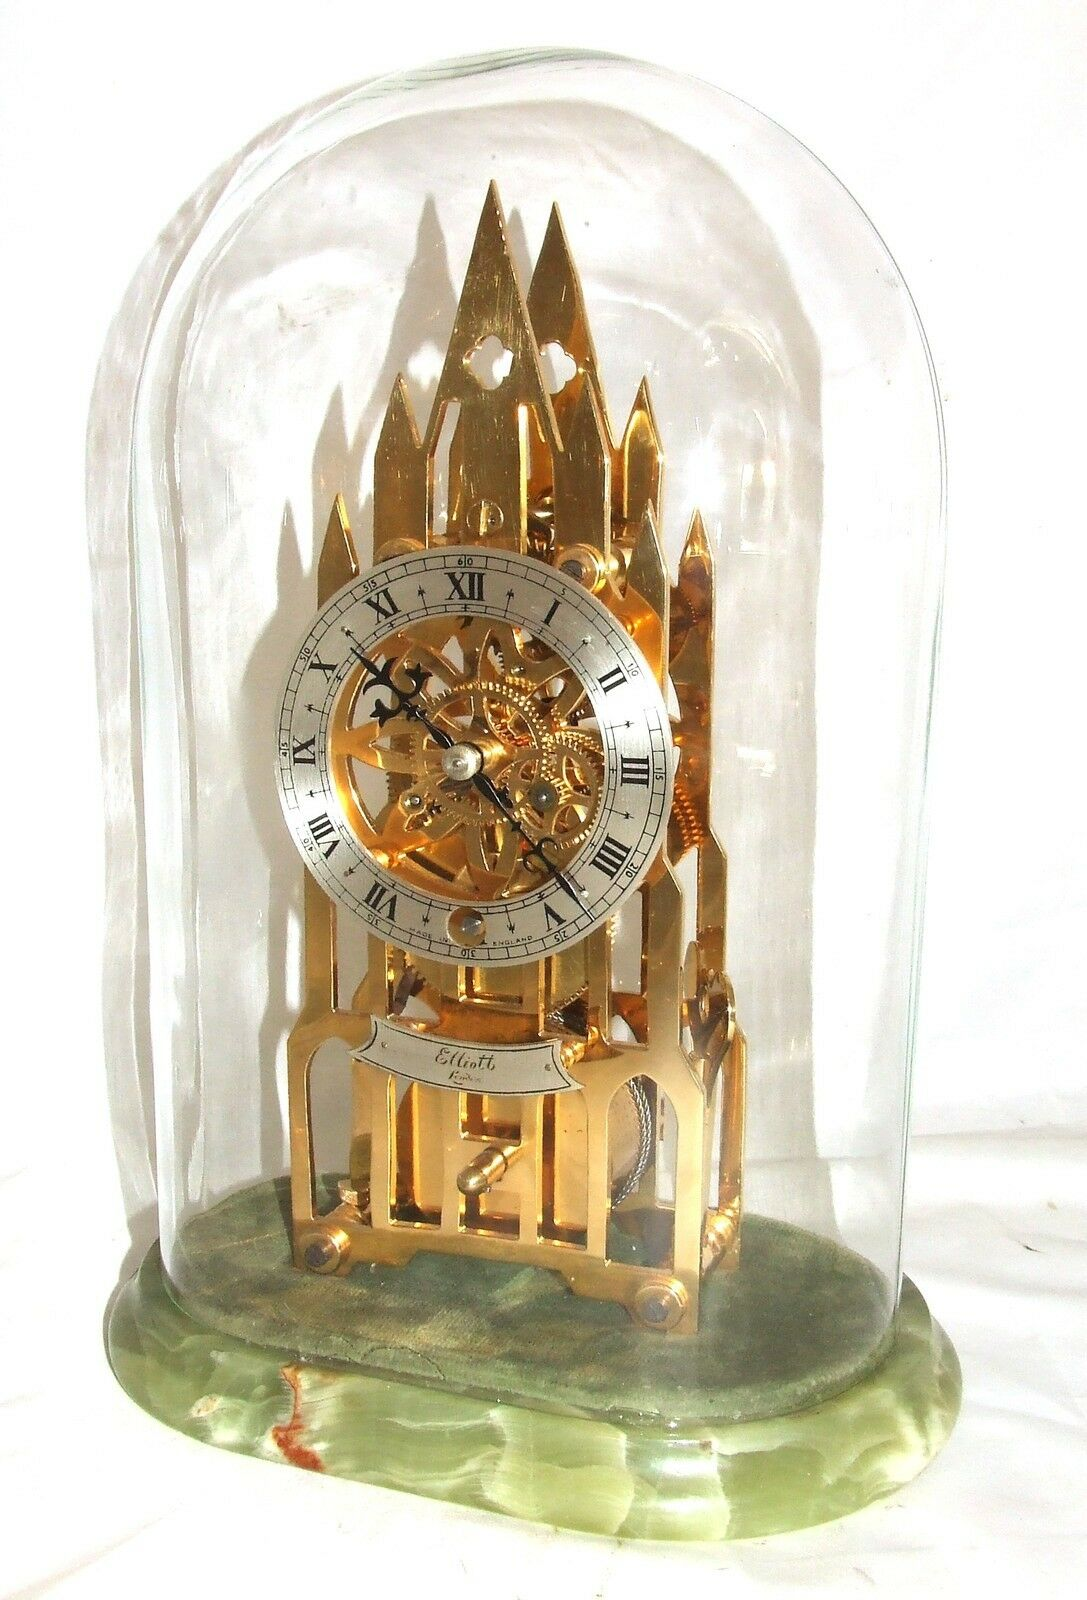 F.W. Elliott  LONDON Gold Plated Cathedral Skeleton Clock : SERVICED & WORKING